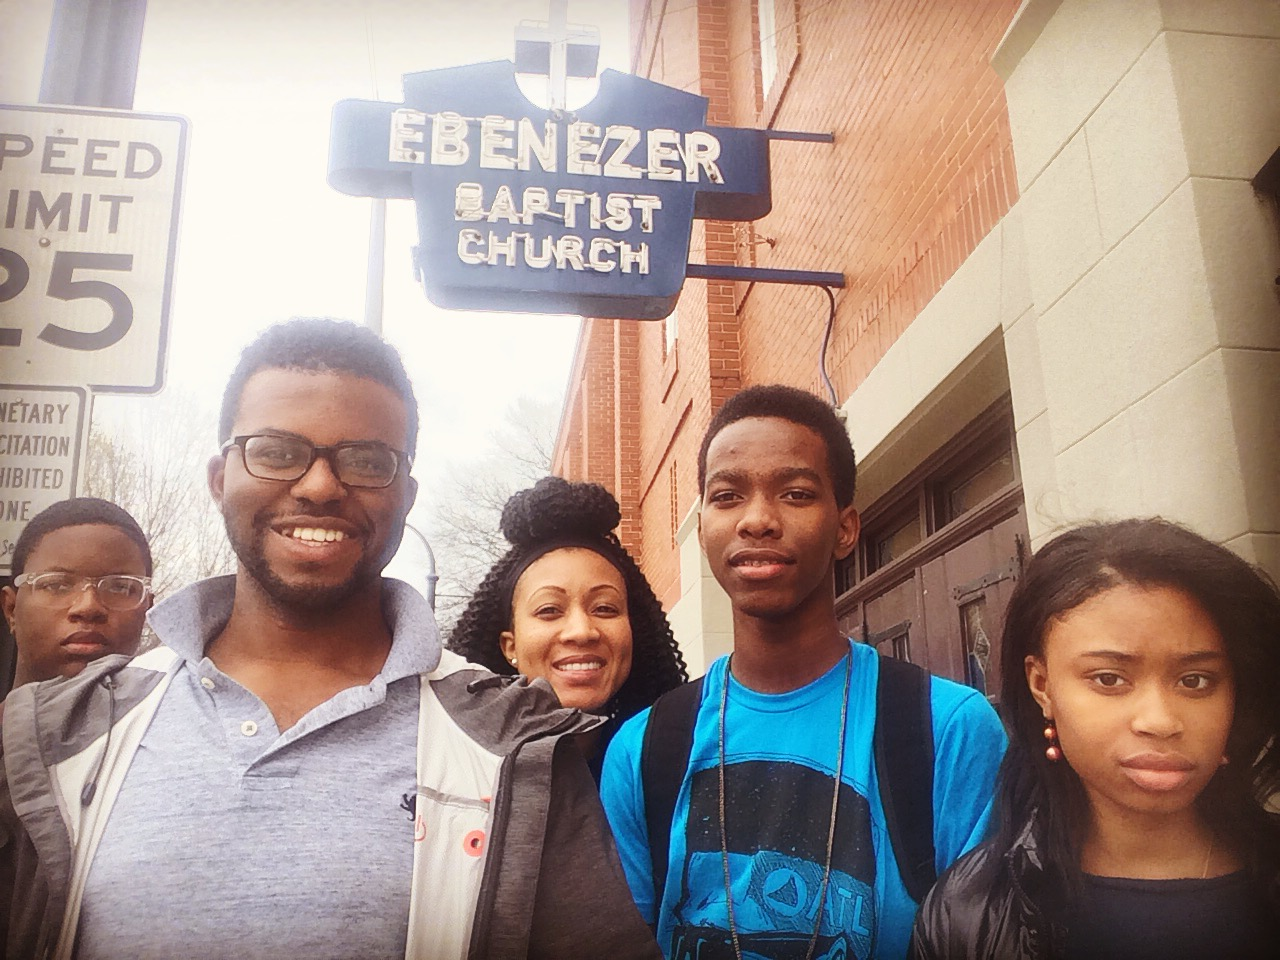 Liz (center) with Jahzamire (far right) and other members of Urban Hope's Young Leaders Group visiting the church where Dr. Martin Luther King, Jr. was baptized and ordained.